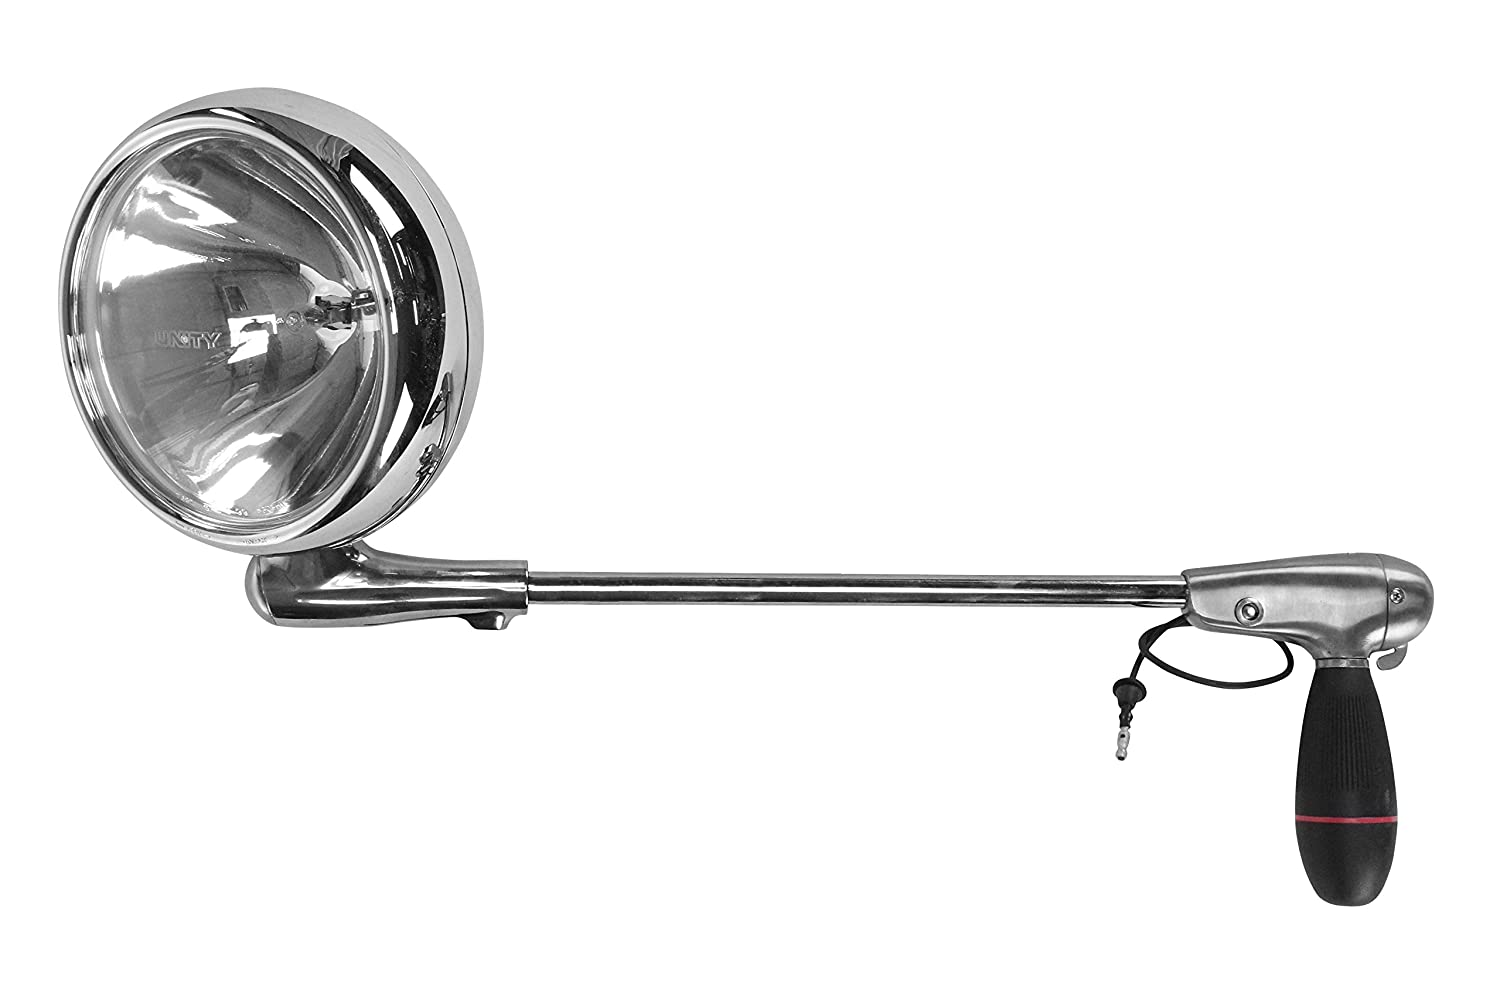 1999 Buick Century Post Mount Spotlight Driver Side with Install kit -Chrome 100W Halogen 6 inch Larson Electronics 1015P9J8LD4